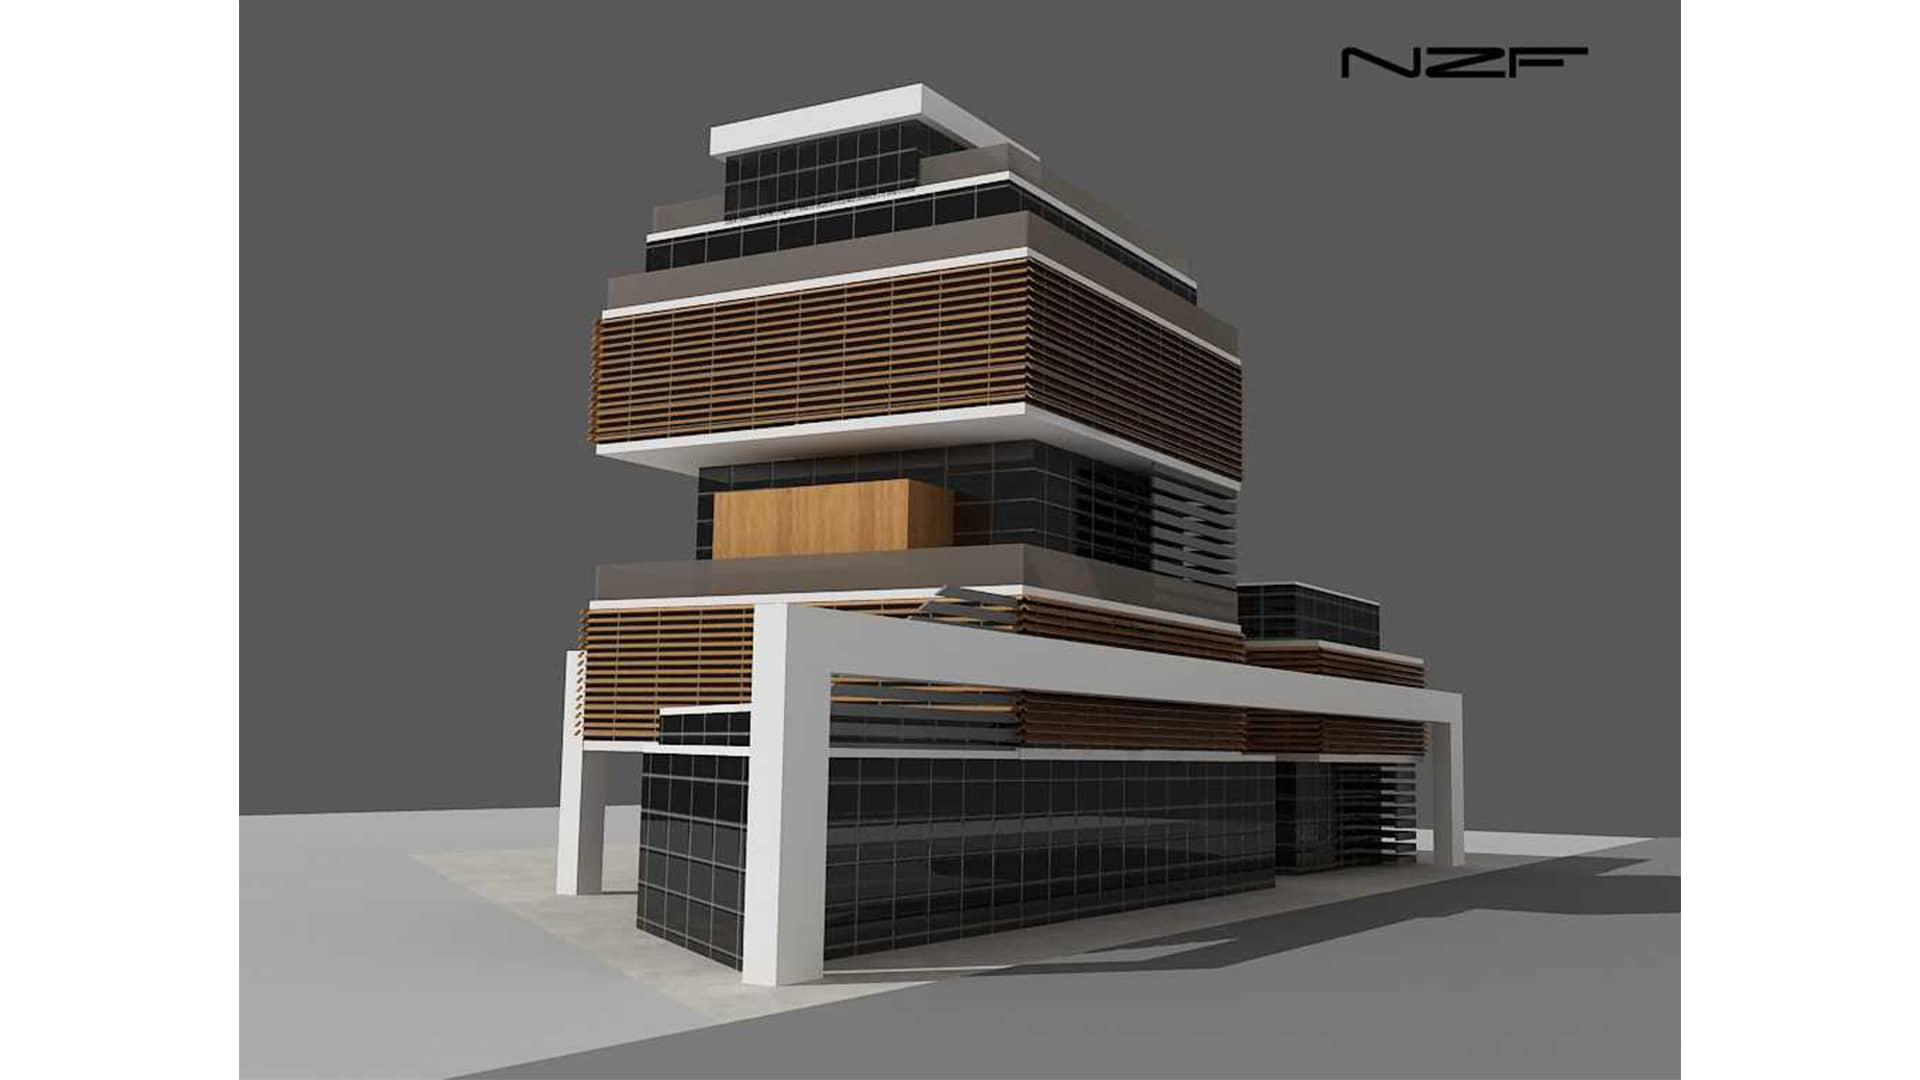 nzf-bank-project-1